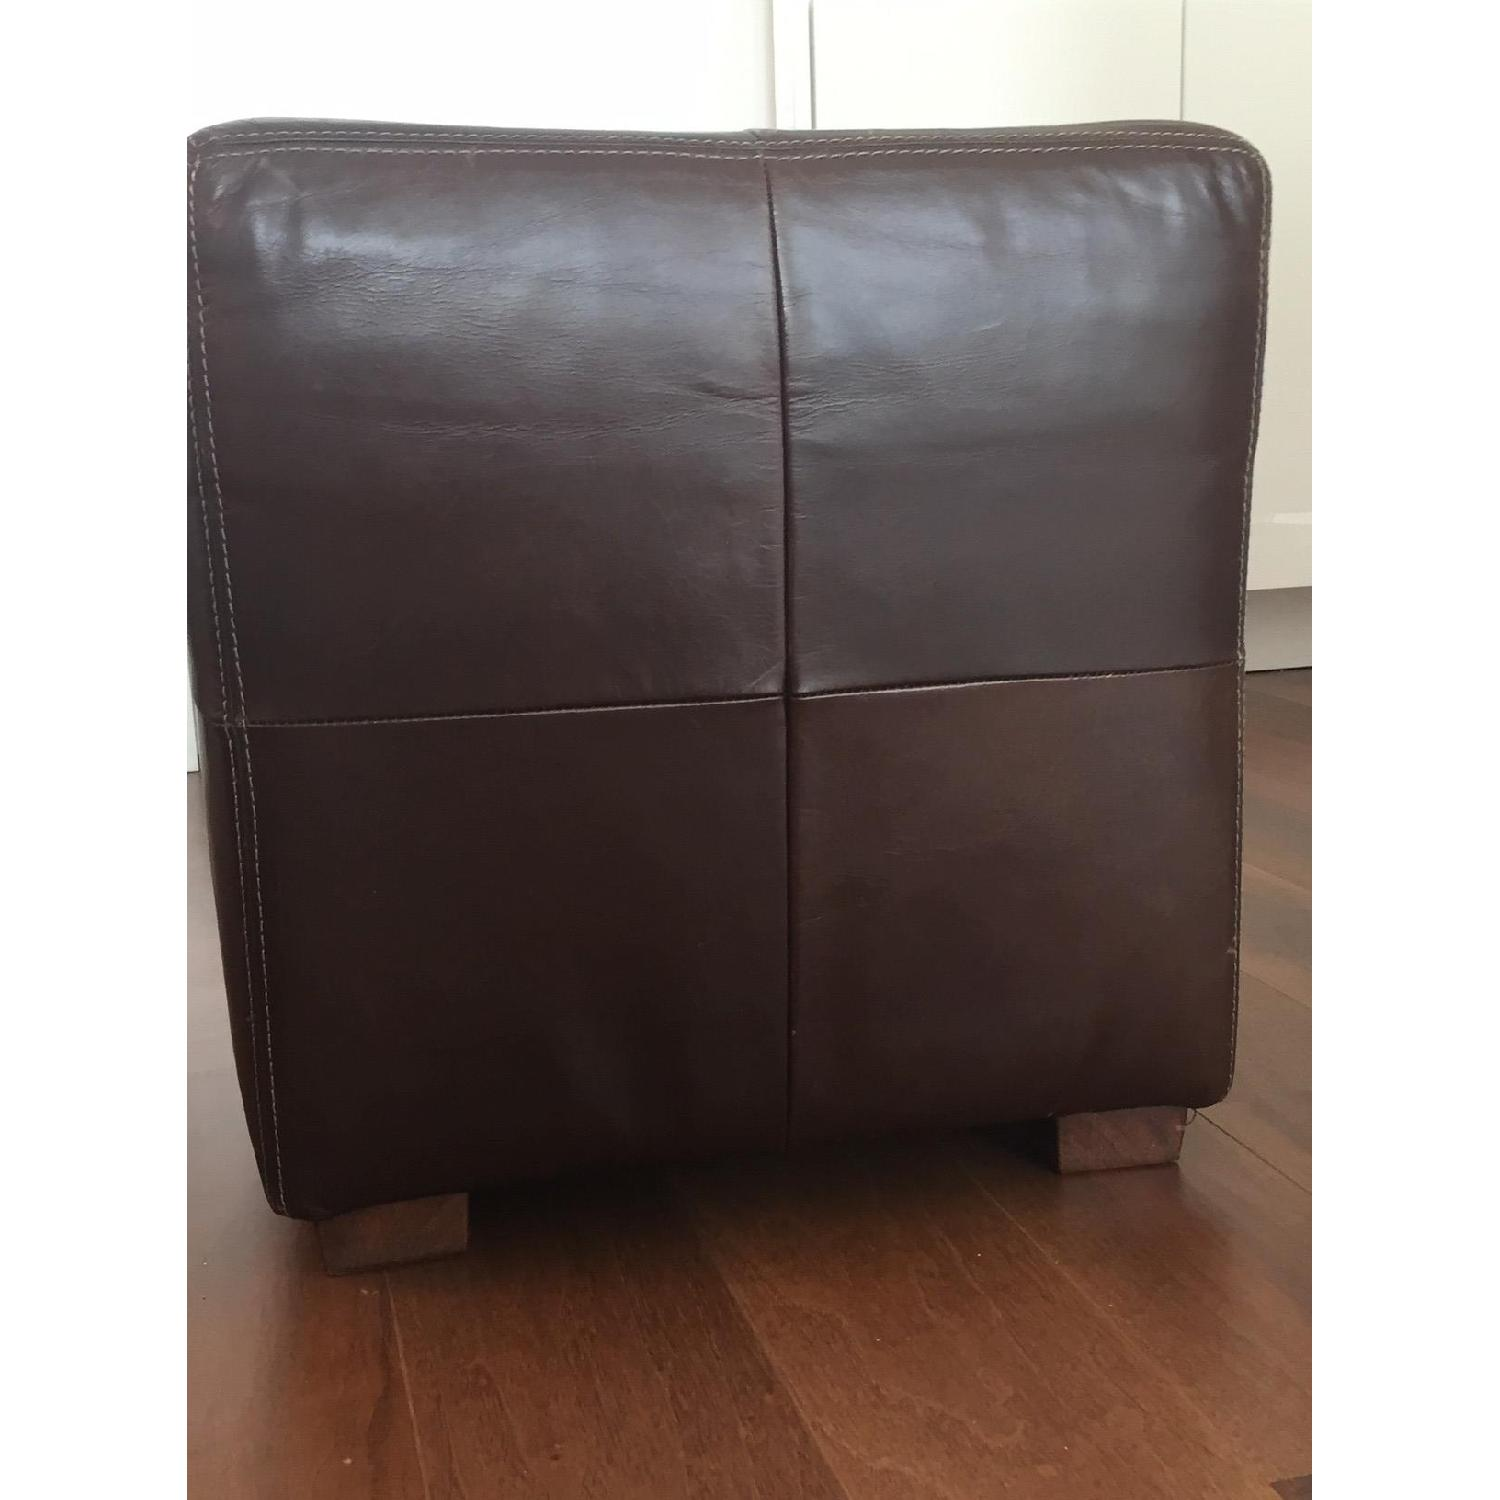 Pottery Barn Leather Square Ottoman - image-3